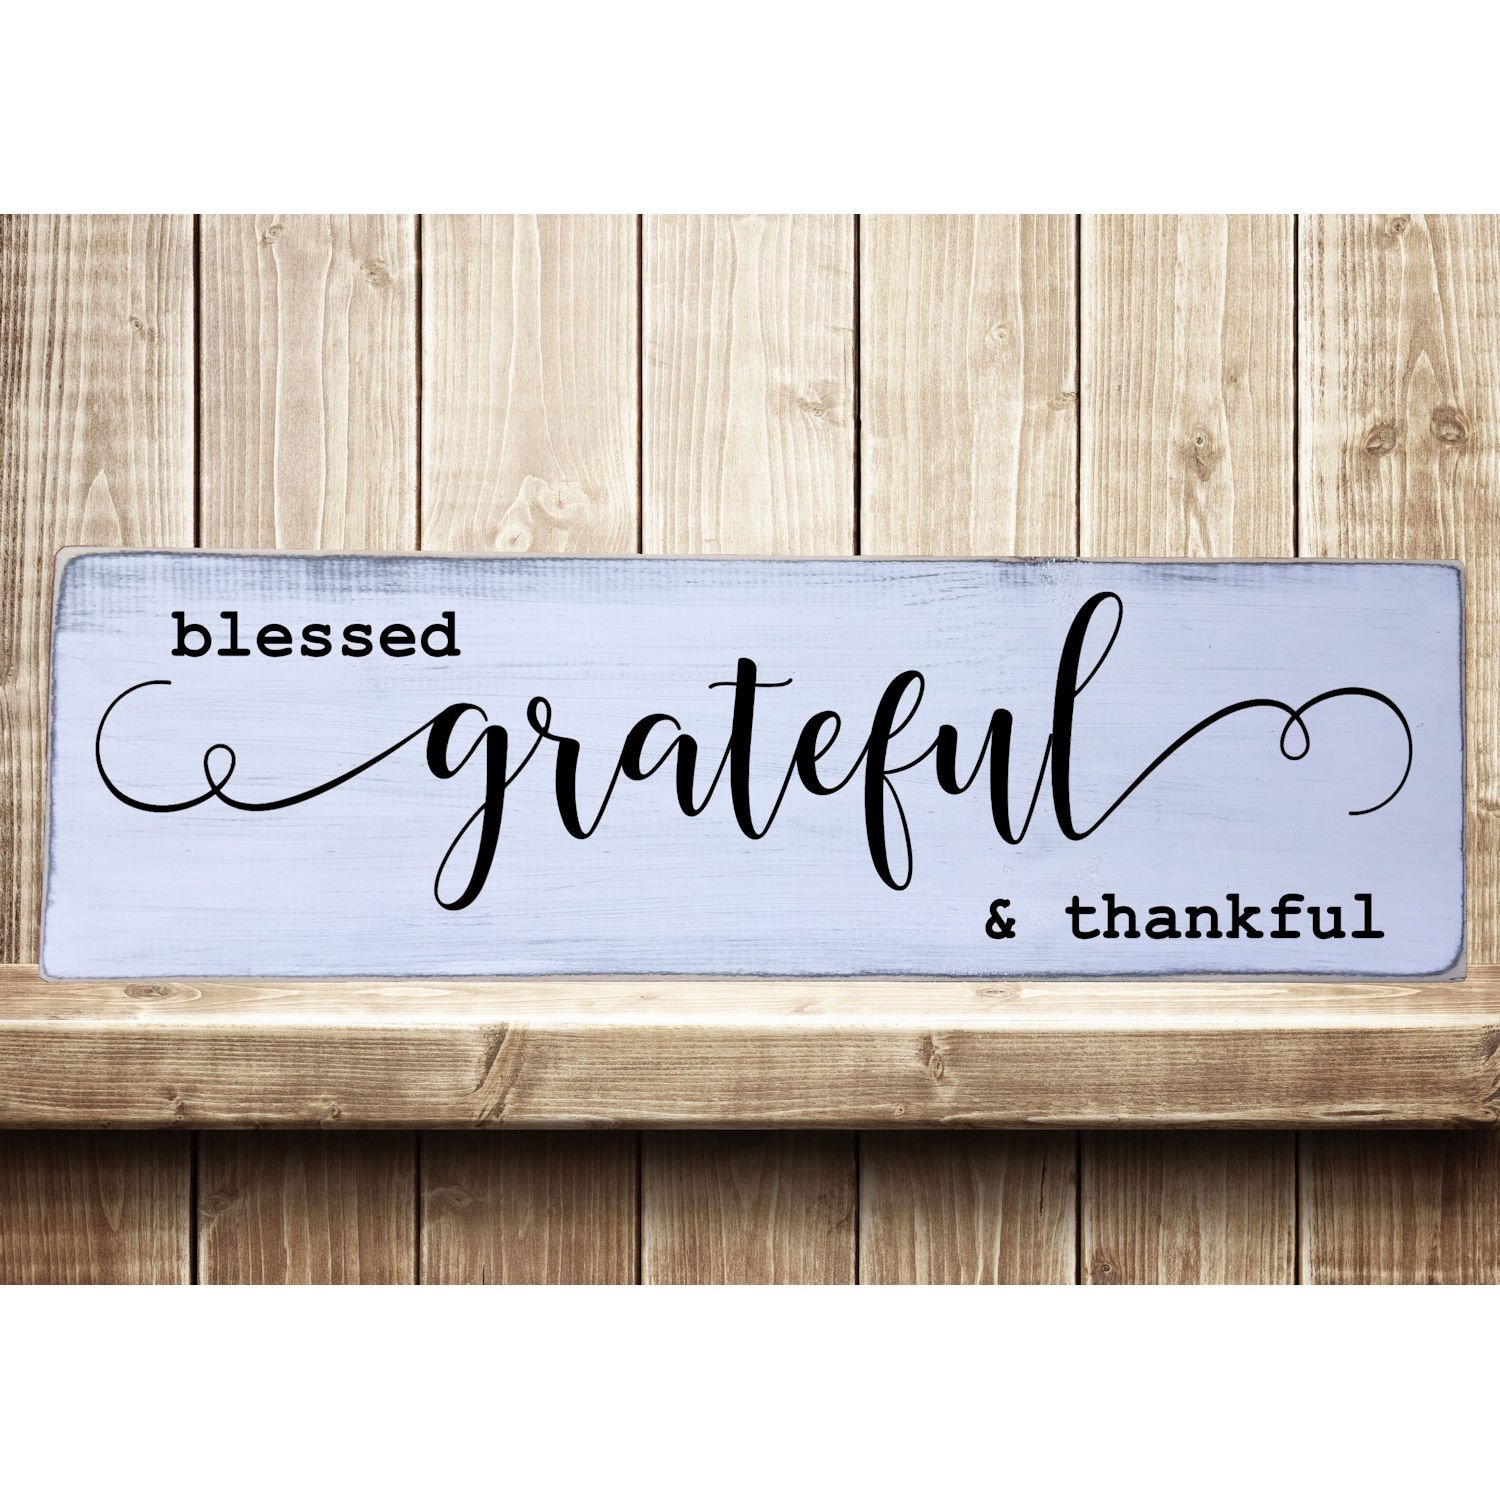 Wall Sign Plaque Decor Rustic Wood Thankful Grateful Blessed Farmhouse Gift New